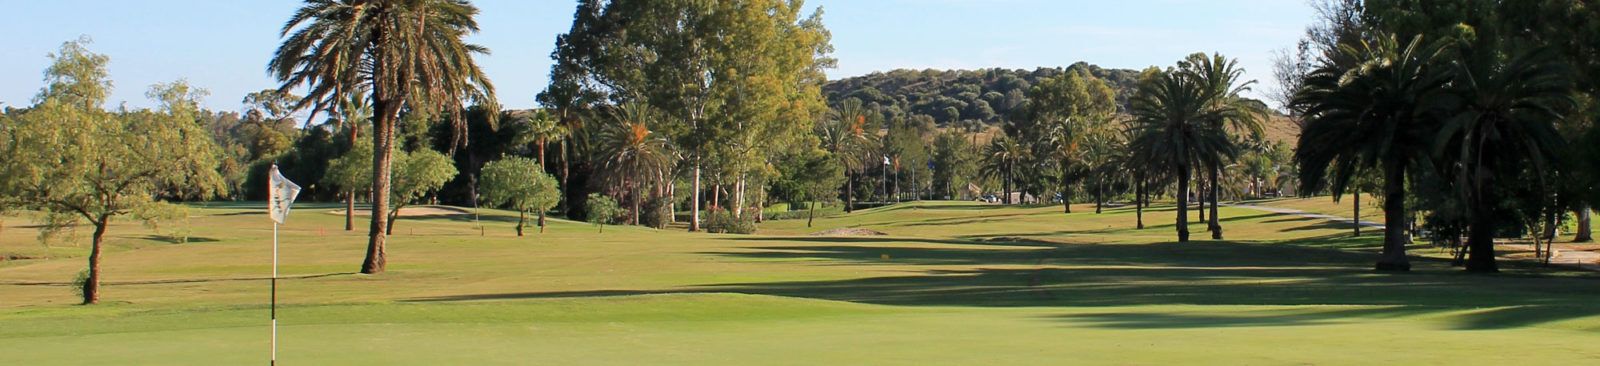 Golf in Benahavis : El Paraiso Golf